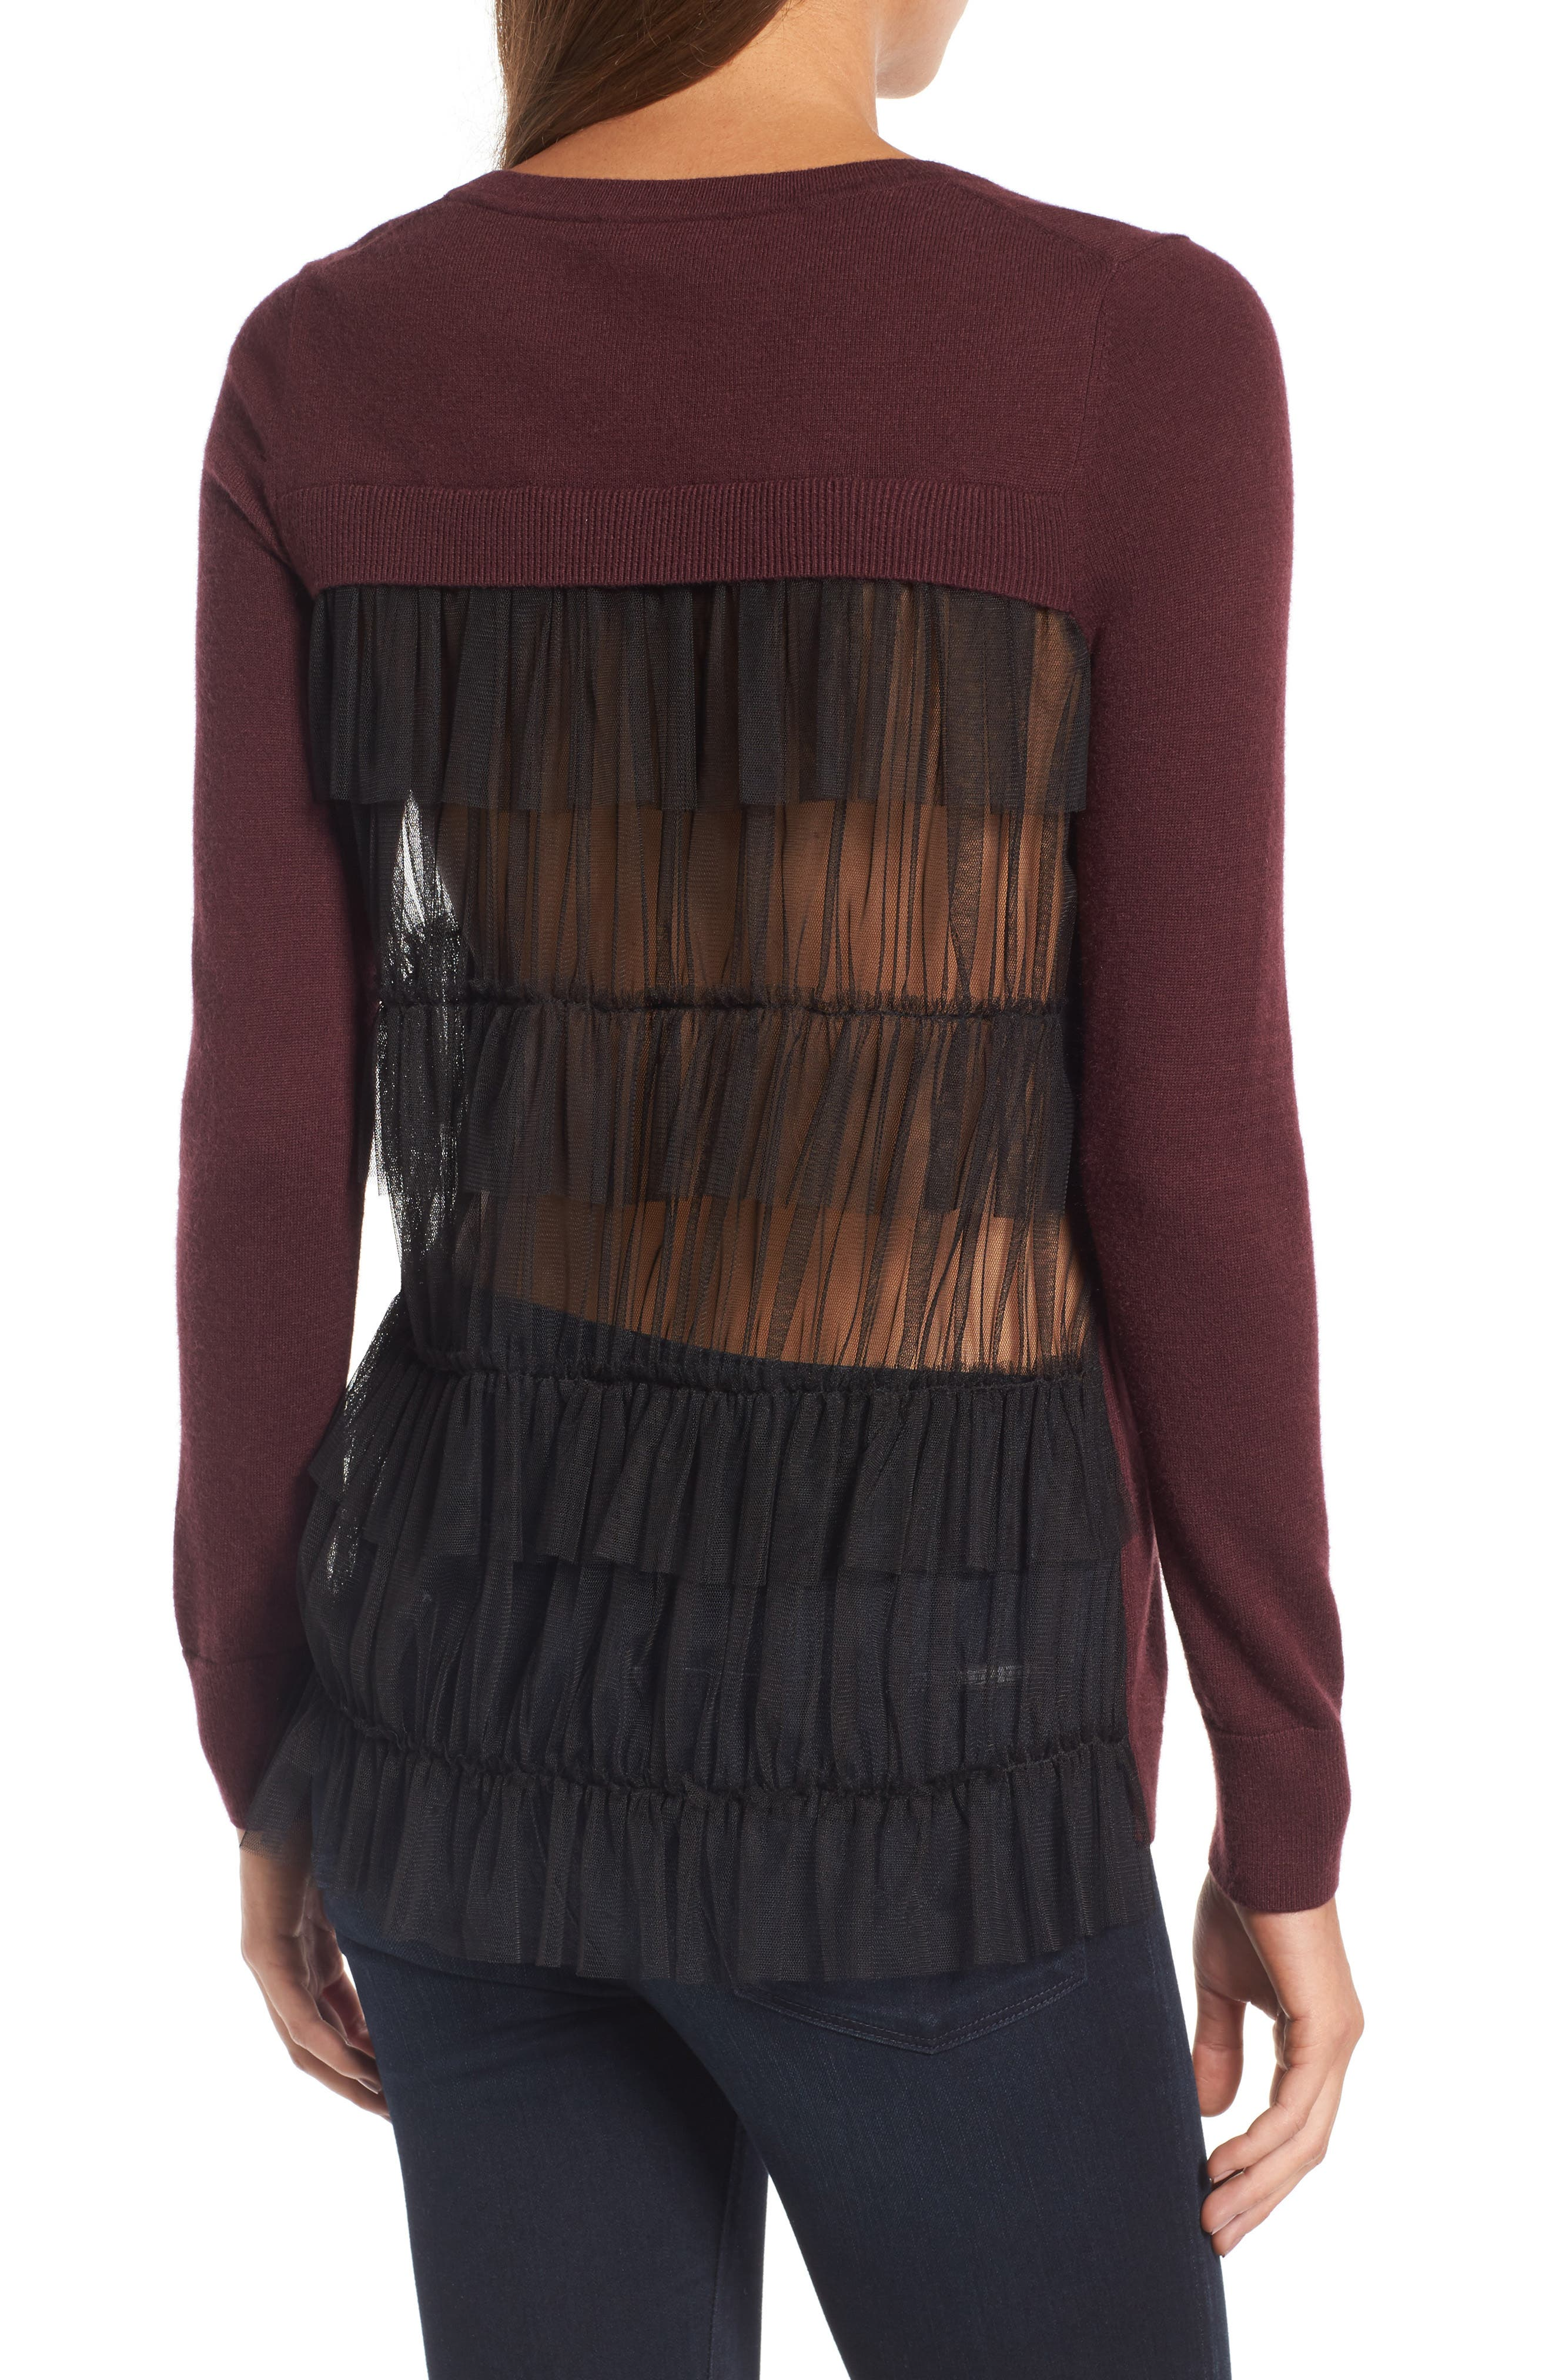 Alternate Image 1 Selected - Chelsea28 Tulle Back Sweater